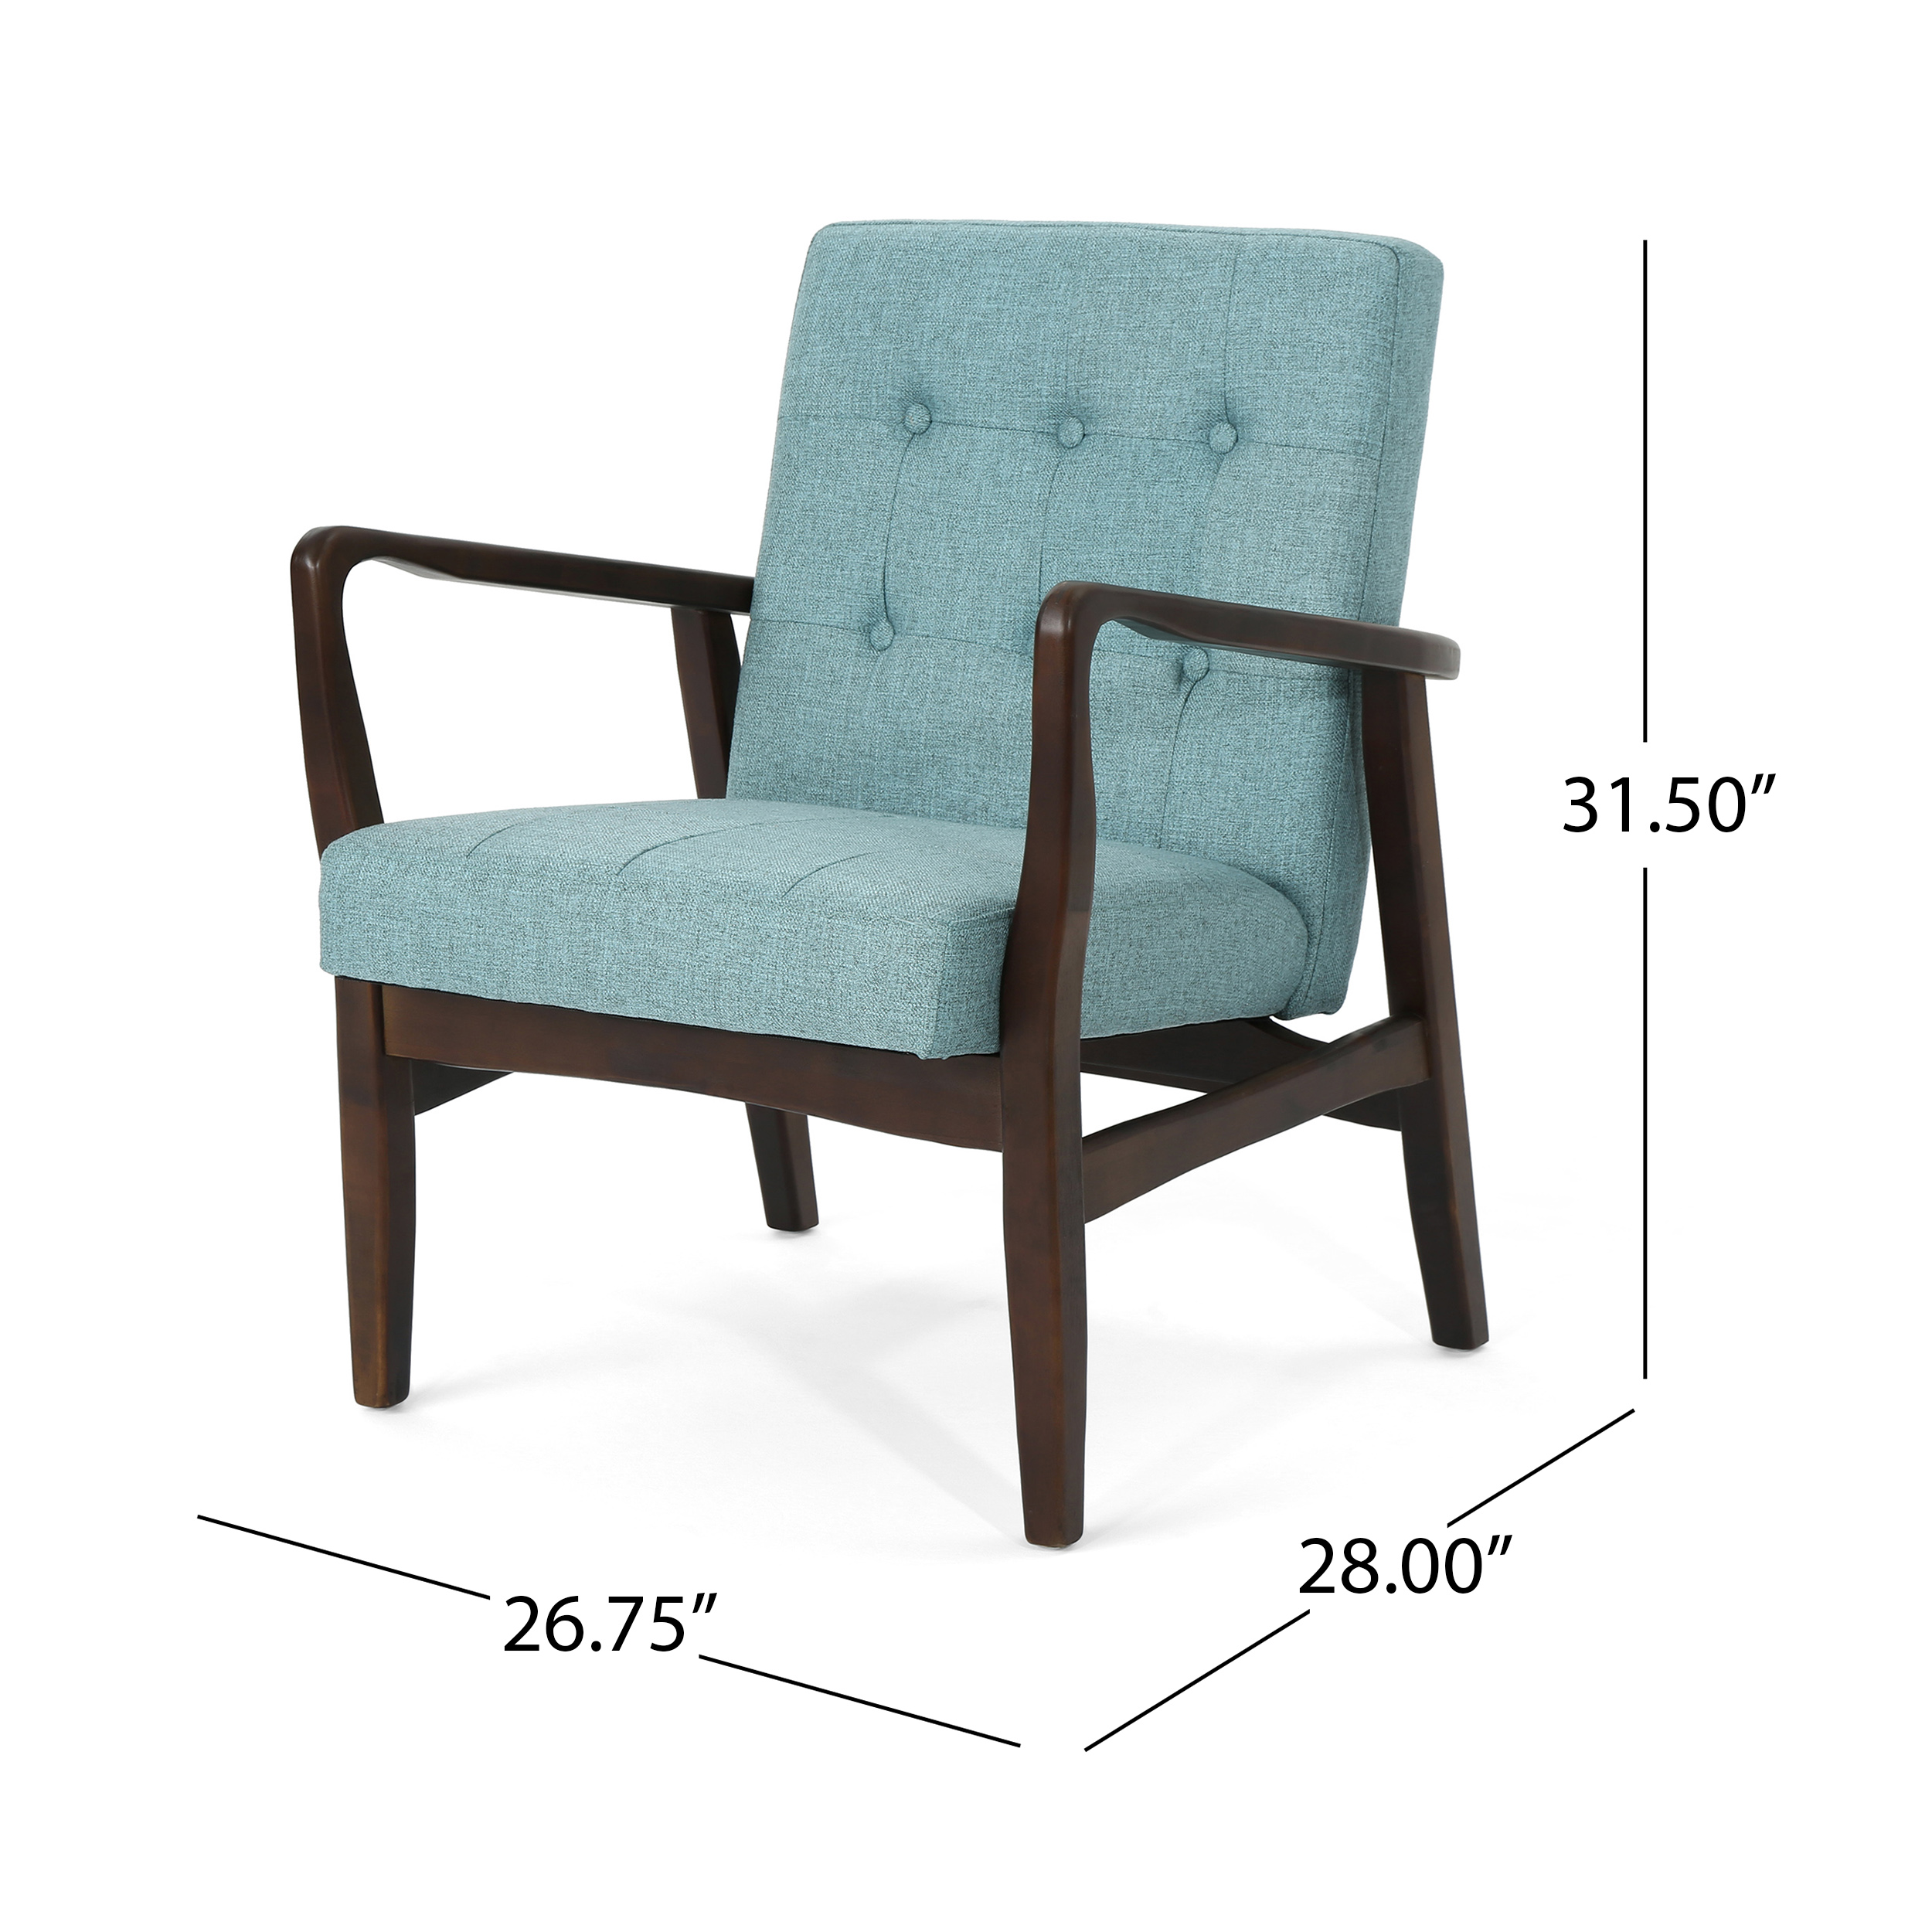 Details About Marcola Mid Century Modern Fabric Club Chair With Wood Frame